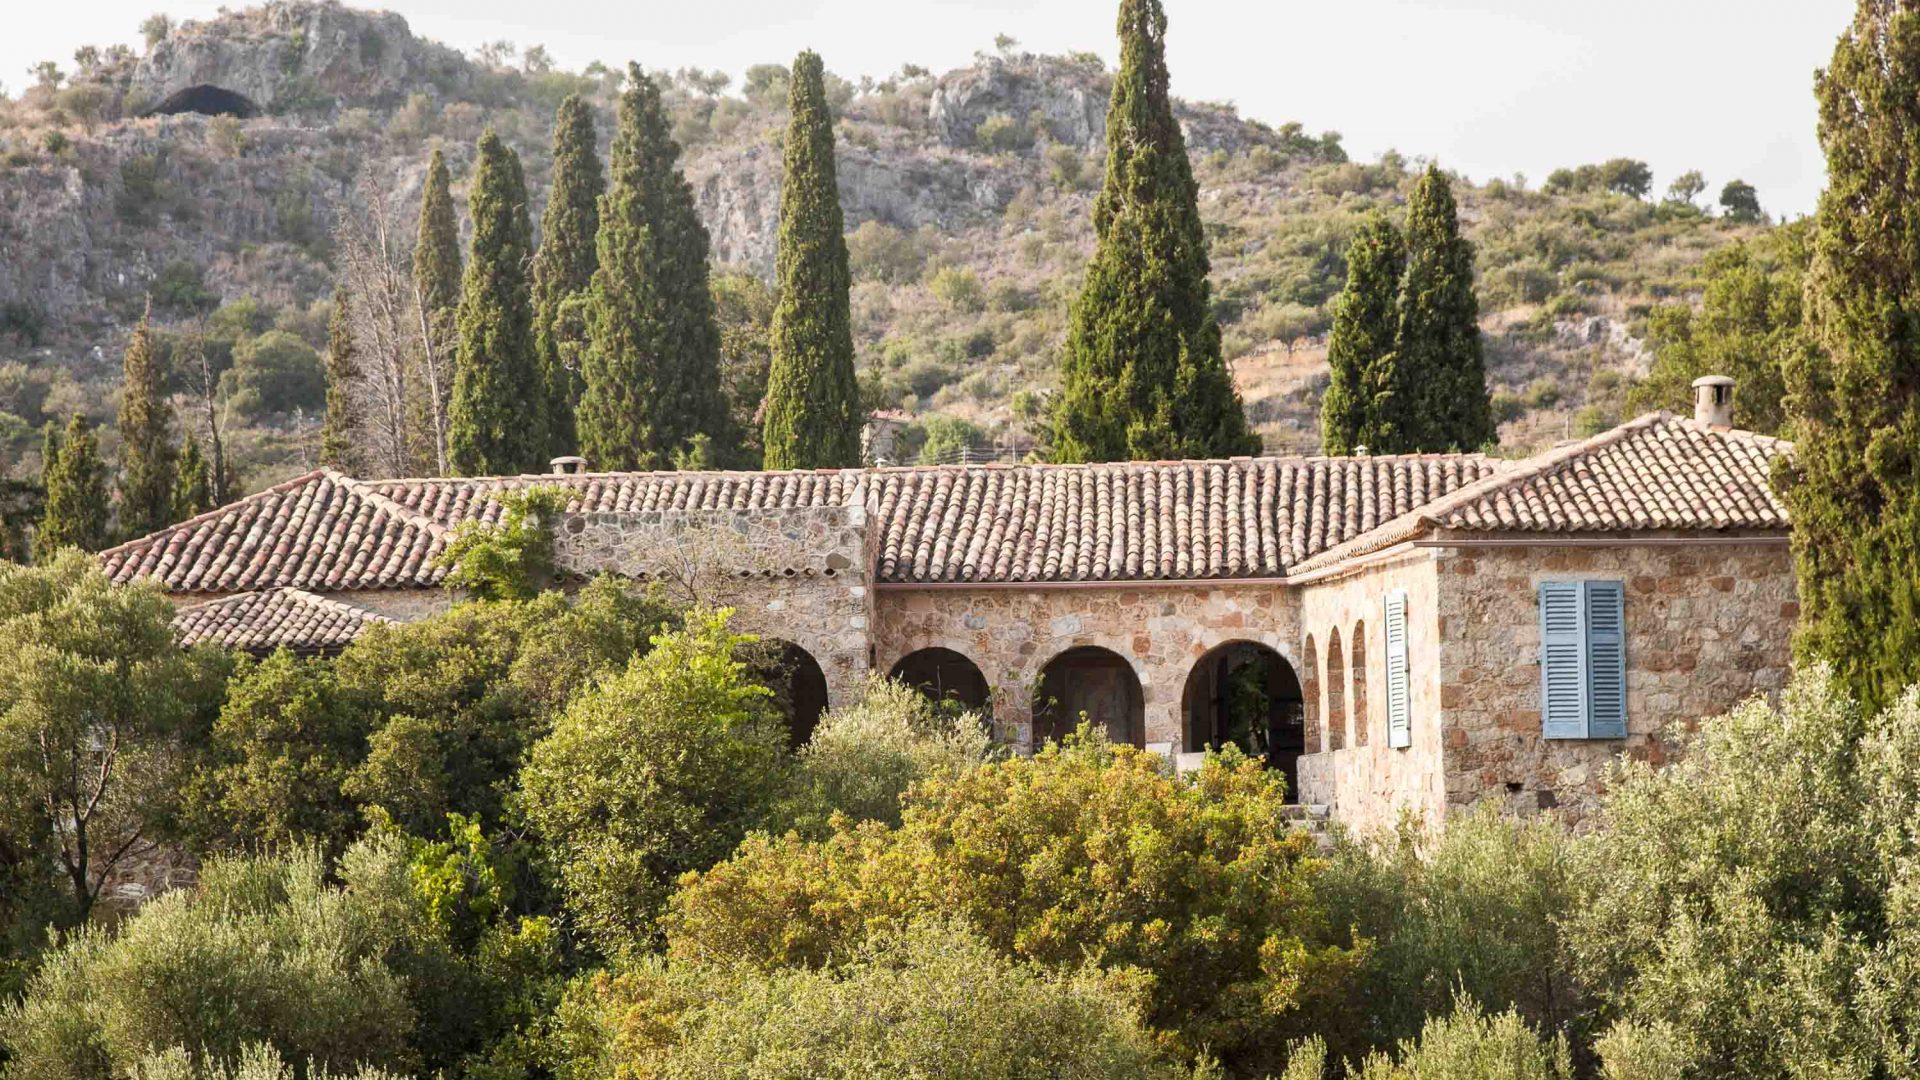 The home of celebrated travel writer Patrick Leigh Fermor in the village of Kalamitsi in Greece's Mani peninsula in the southern Peloponnese.